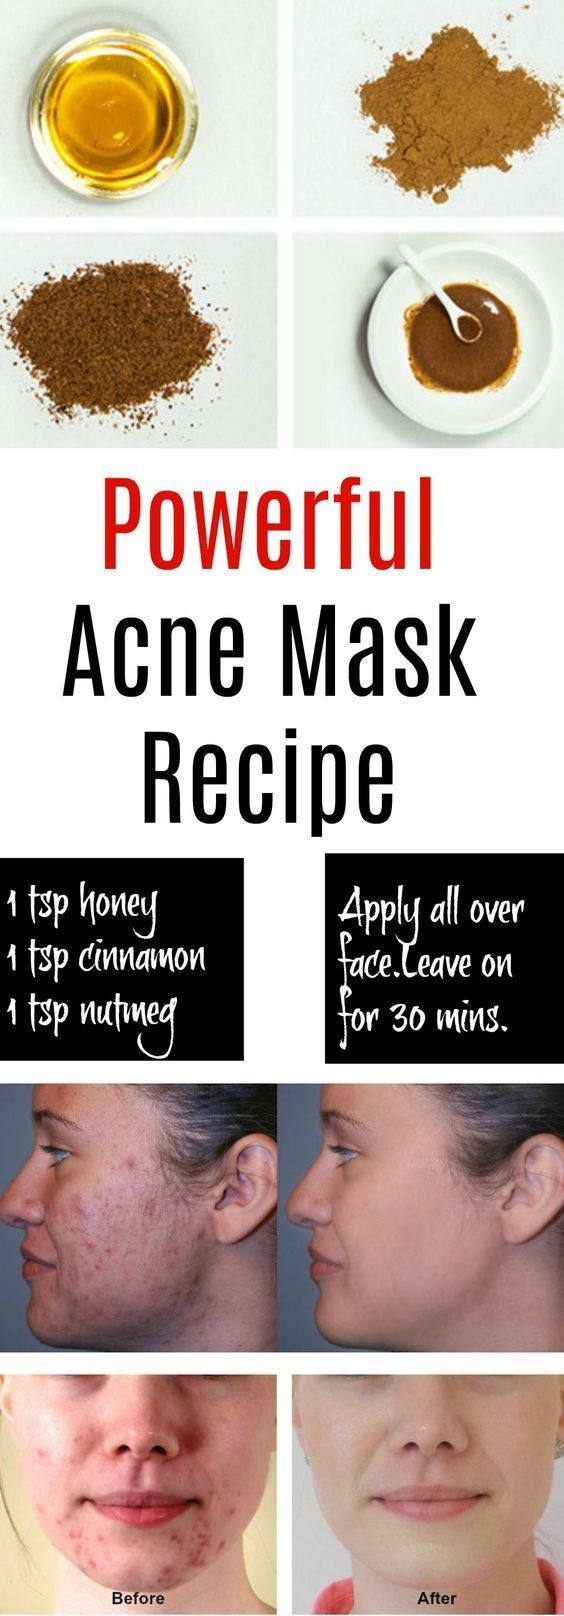 home remedies for pimples for oily skin,  homemade acne mask,  home remedies for acne overnight,  how to cure acne naturally in 3 days,  best home remedy for acne overnight,  home remedies for pimples and blackheads for oily skin,  home remedies for acne